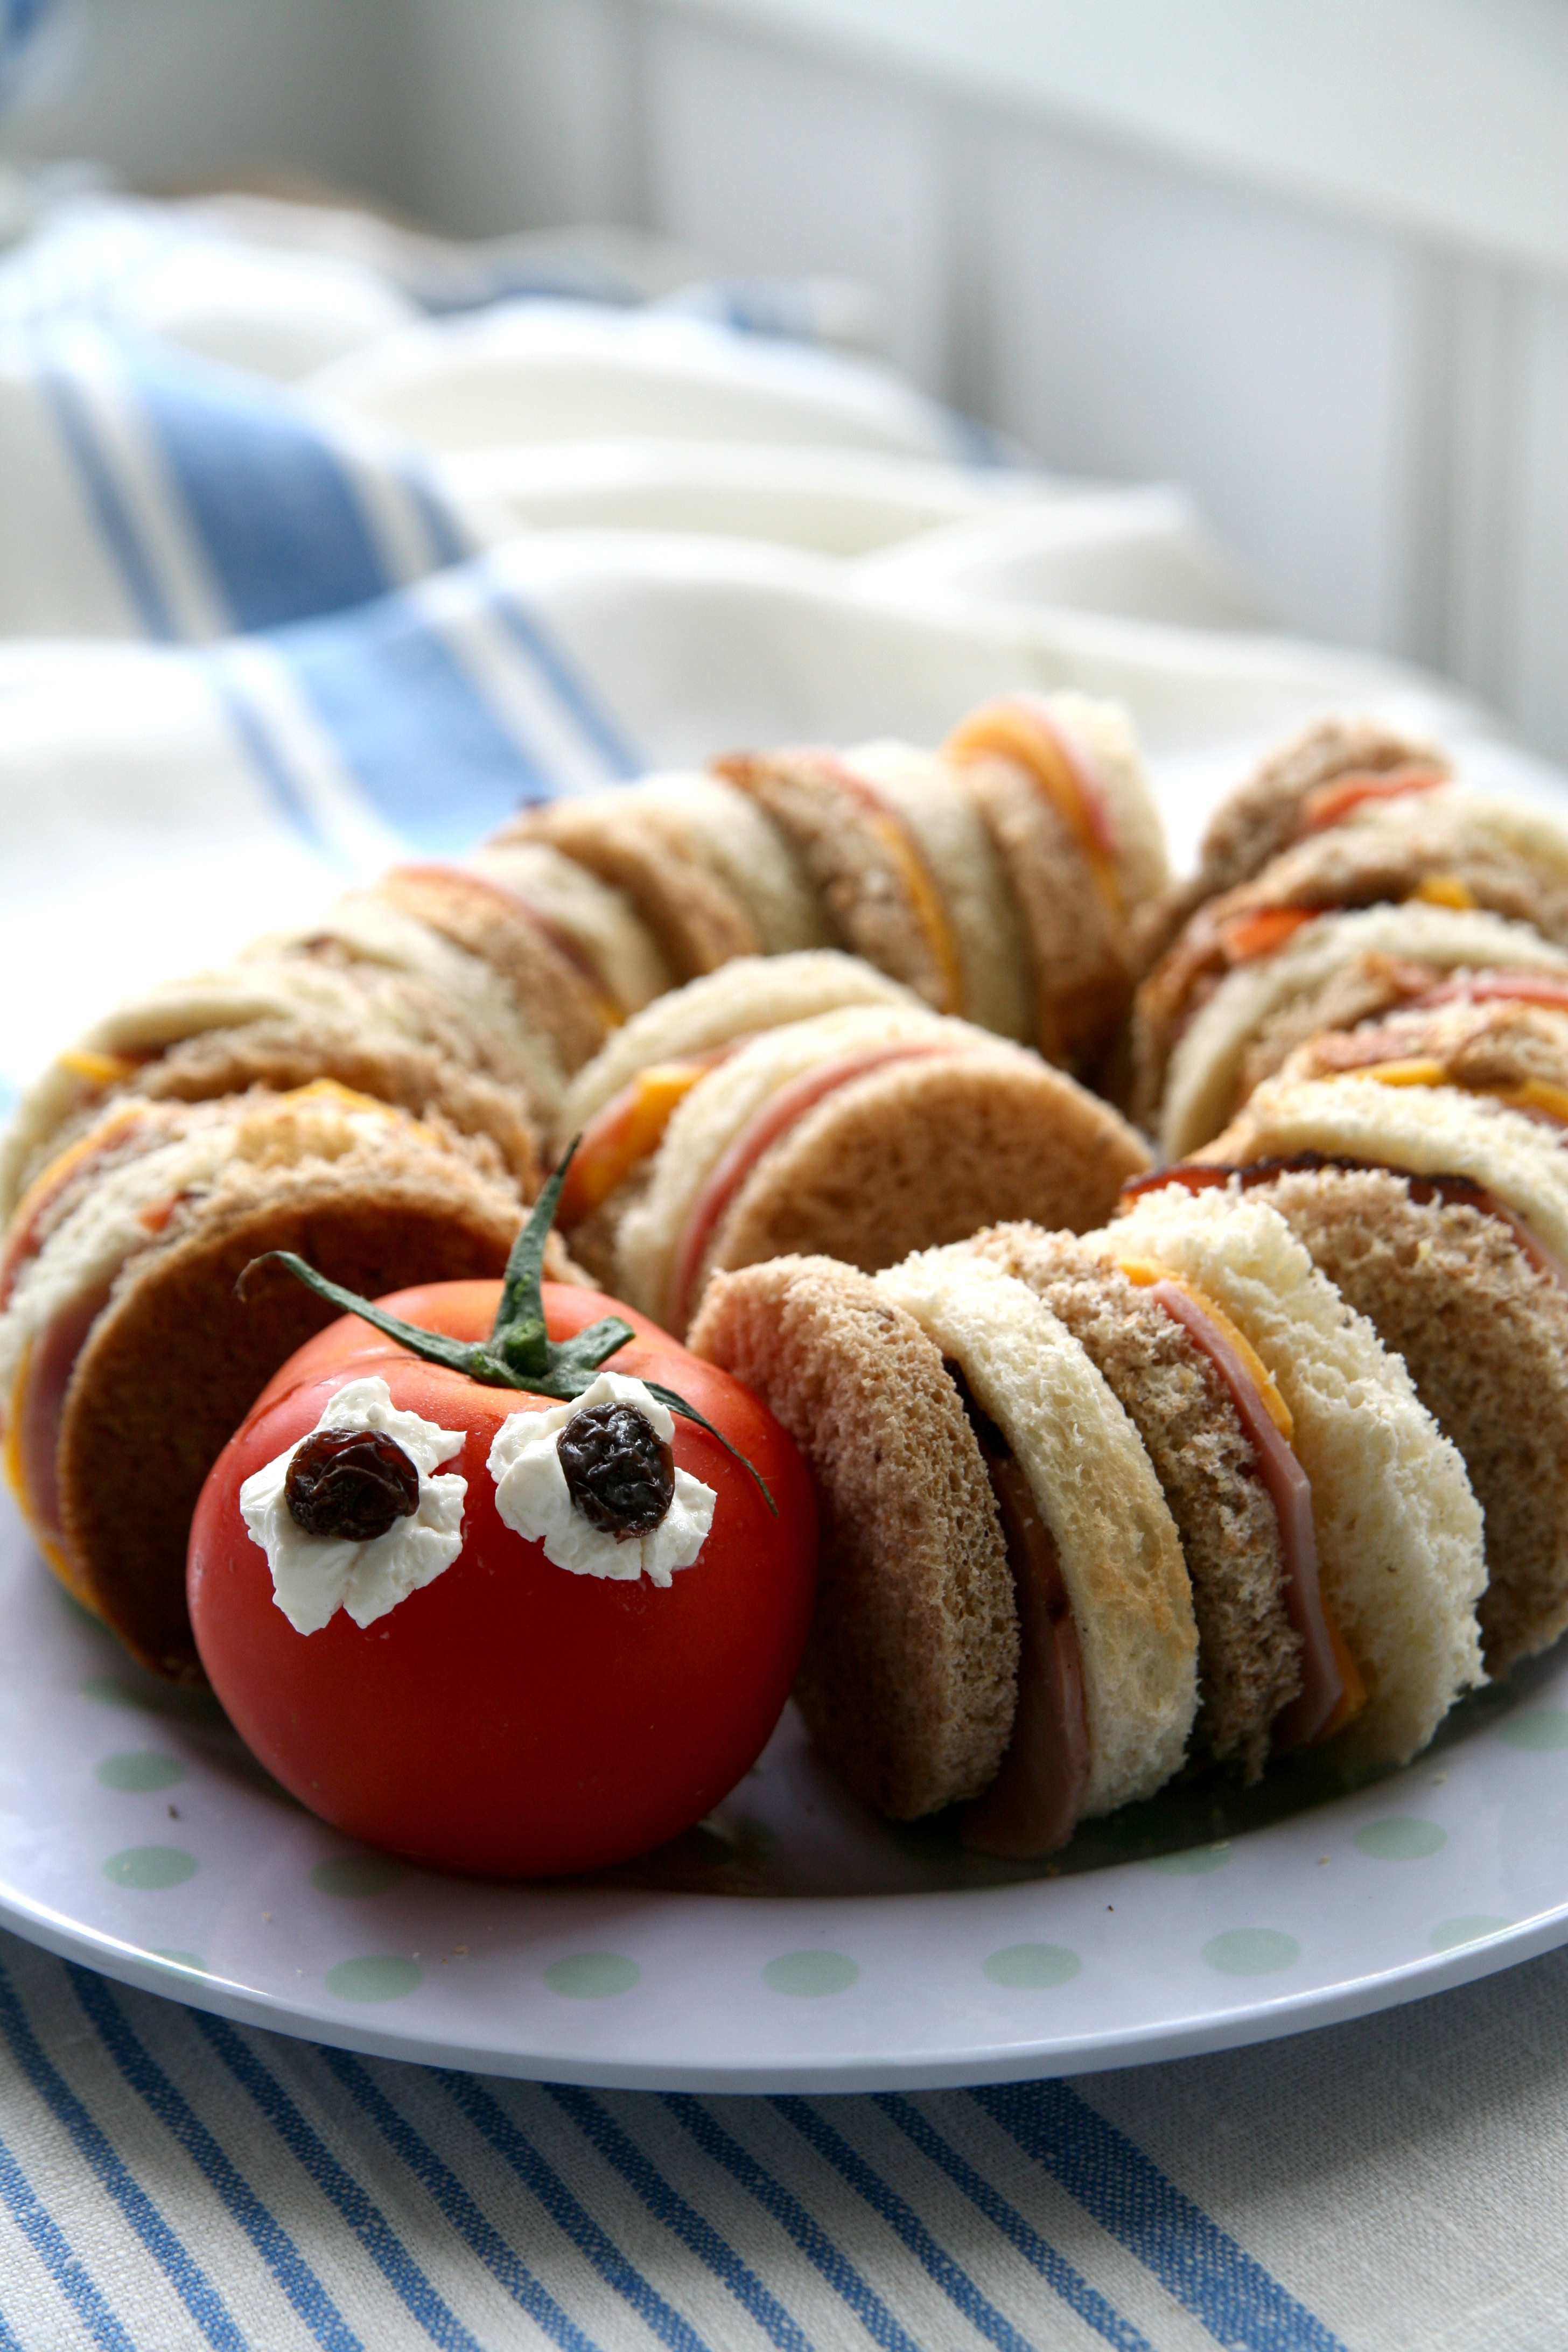 Circular sandwiches with a simple tomato head.